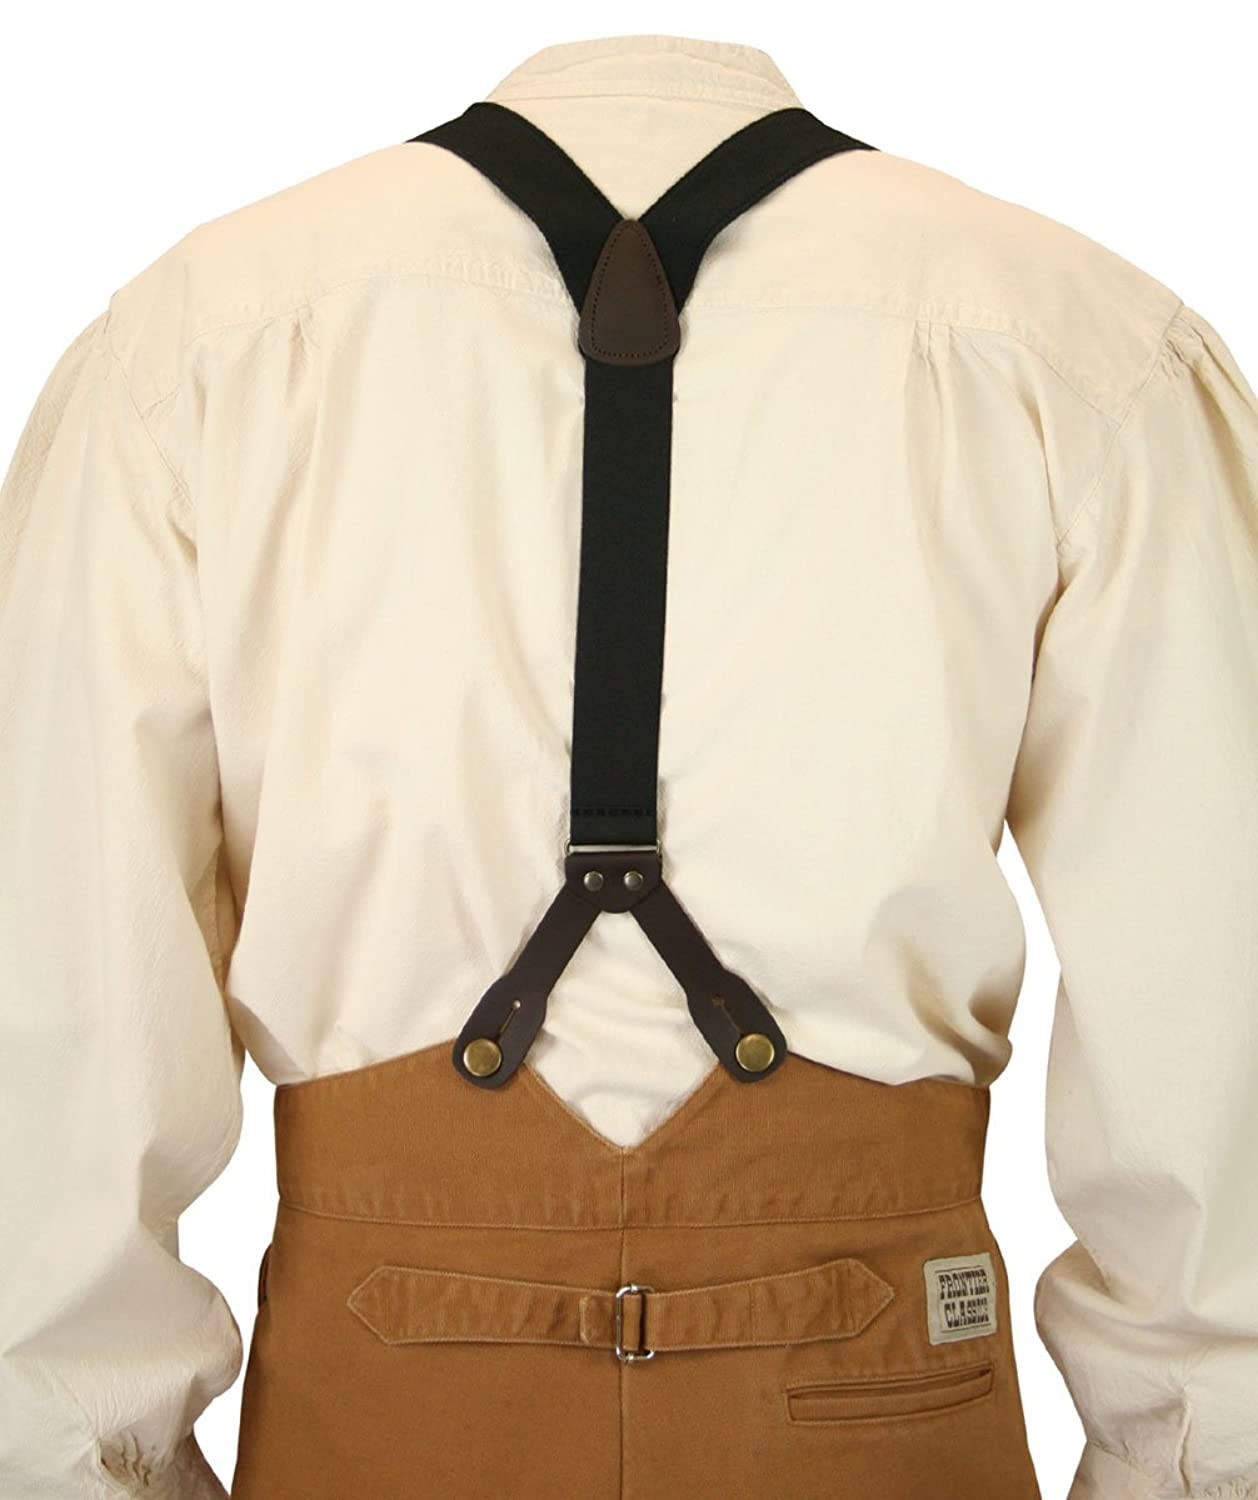 Men's Vintage Style Suspenders Historical Emporium Mens Canvas Stagecoach Y-Back Suspenders $27.95 AT vintagedancer.com